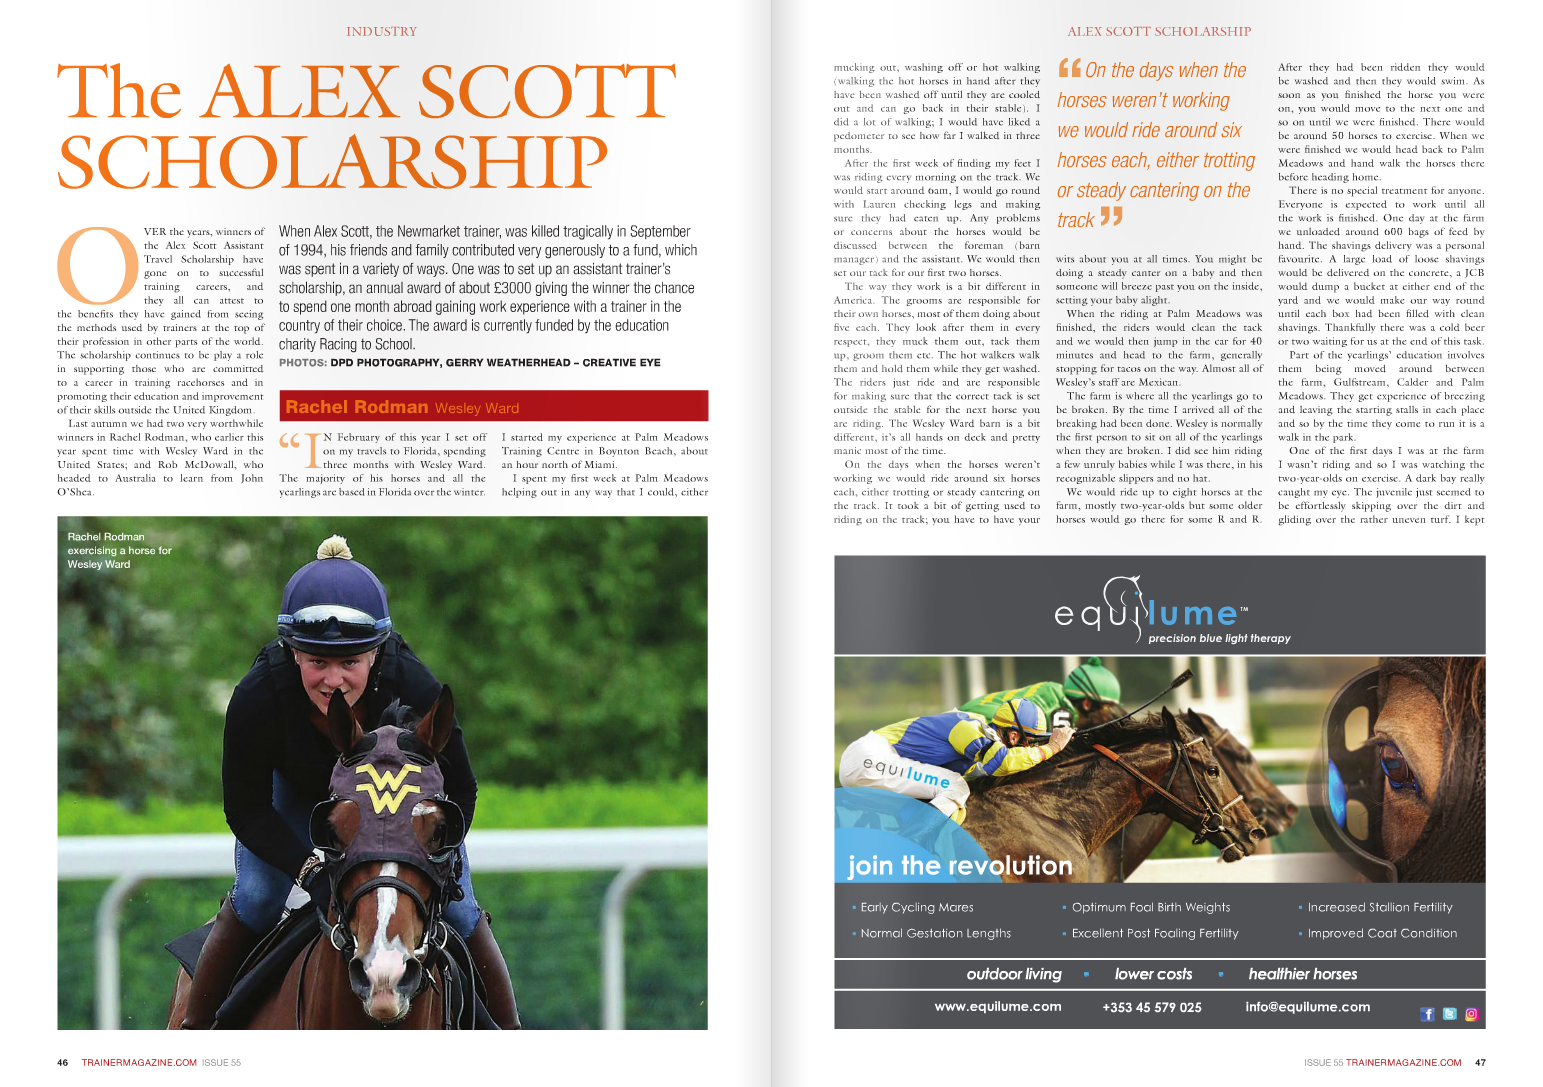 """The ALEX SCOTT SCHOLARSHIP When Alex Scott, the Newmarket trainer, was killed tragically in September of 1994, his friends and family contributed very generously to a fund, which was spent in a variety of ways. One was to set up an assistant trainer's scholarship, an annual award of about £3000 giving the winner the chance to spend one month abroad gaining work experience with a trainer in the country of their choice. The award is currently funded by the education charity Racing to School. PHOTOS: DPD PHOTOGRAPHY, GERRY WEATHERHEAD – CREATIVE EYE OVER the years, winners of the Alex Scott Assistant Travel Scholarship have gone on to successful training careers, and they all can attest to the benefits they have gained from seeing the methods used by trainers at the top of their profession in other parts of the world. The scholarship continues to be play a role in supporting those who are committed to a career in training racehorses and in promoting their education and improvement of their skills outside the United Kingdom. Last autumn we had two very worthwhile winners in Rachel Rodman, who earlier this year spent time with Wesley Ward in the United States; and Rob McDowall, who headed to Australia to learn from John O'Shea. """"IN February of this year I set off on my travels to Florida, spending three months with Wesley Ward. The majority of his horses and all the yearlings are based in Florida over the winter. I started my experience at Palm Meadows Training Centre in Boynton Beach, about an hour north of Miami. I spent my first week at Palm Meadows helping out in any way that I could, eithe mucking out, washing off or hot walking (walking the hot horses in hand after they have been washed off until they are cooled out and can go back in their stable). I did a lot of walking; I would have liked a pedometer to see how far I walked in three months. After the first week of finding my feet I was riding every morning on the track. We would start around 6am, I would go roun"""